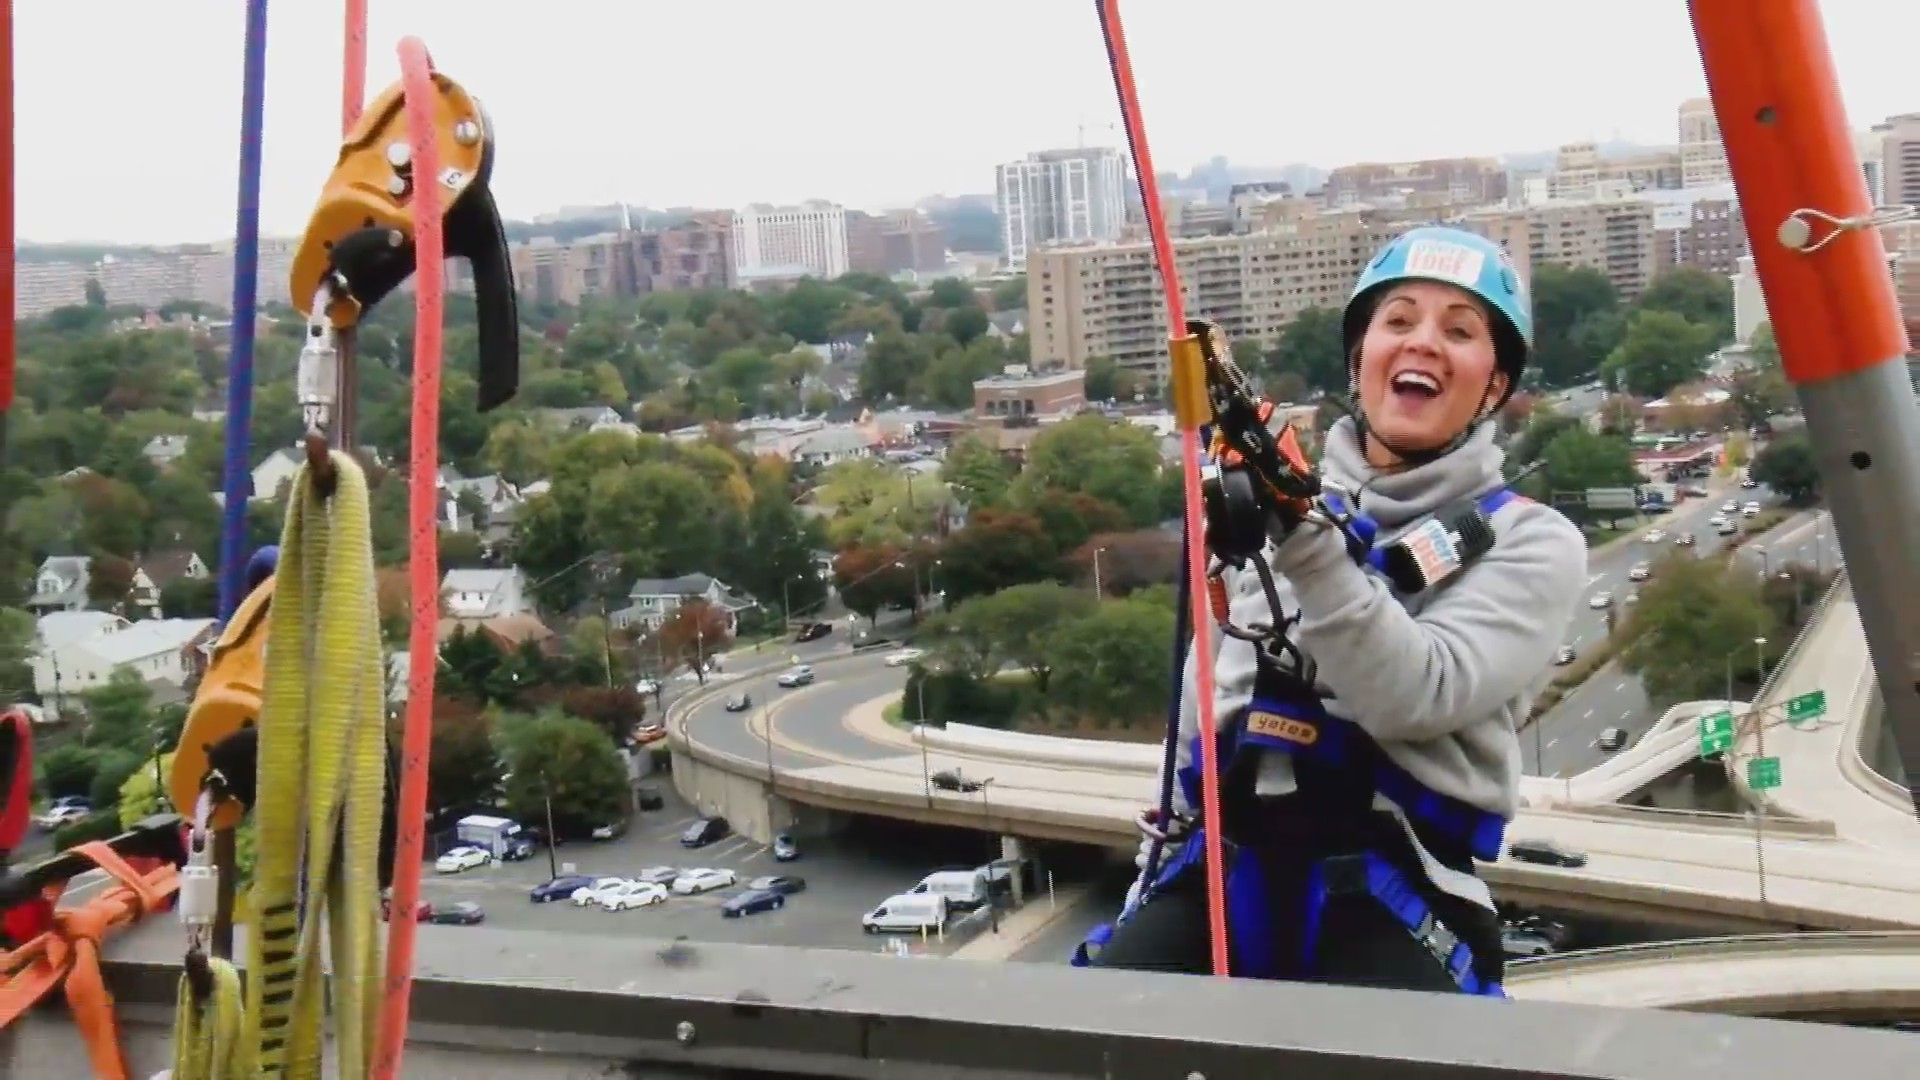 Rappelling_1_20181027022809